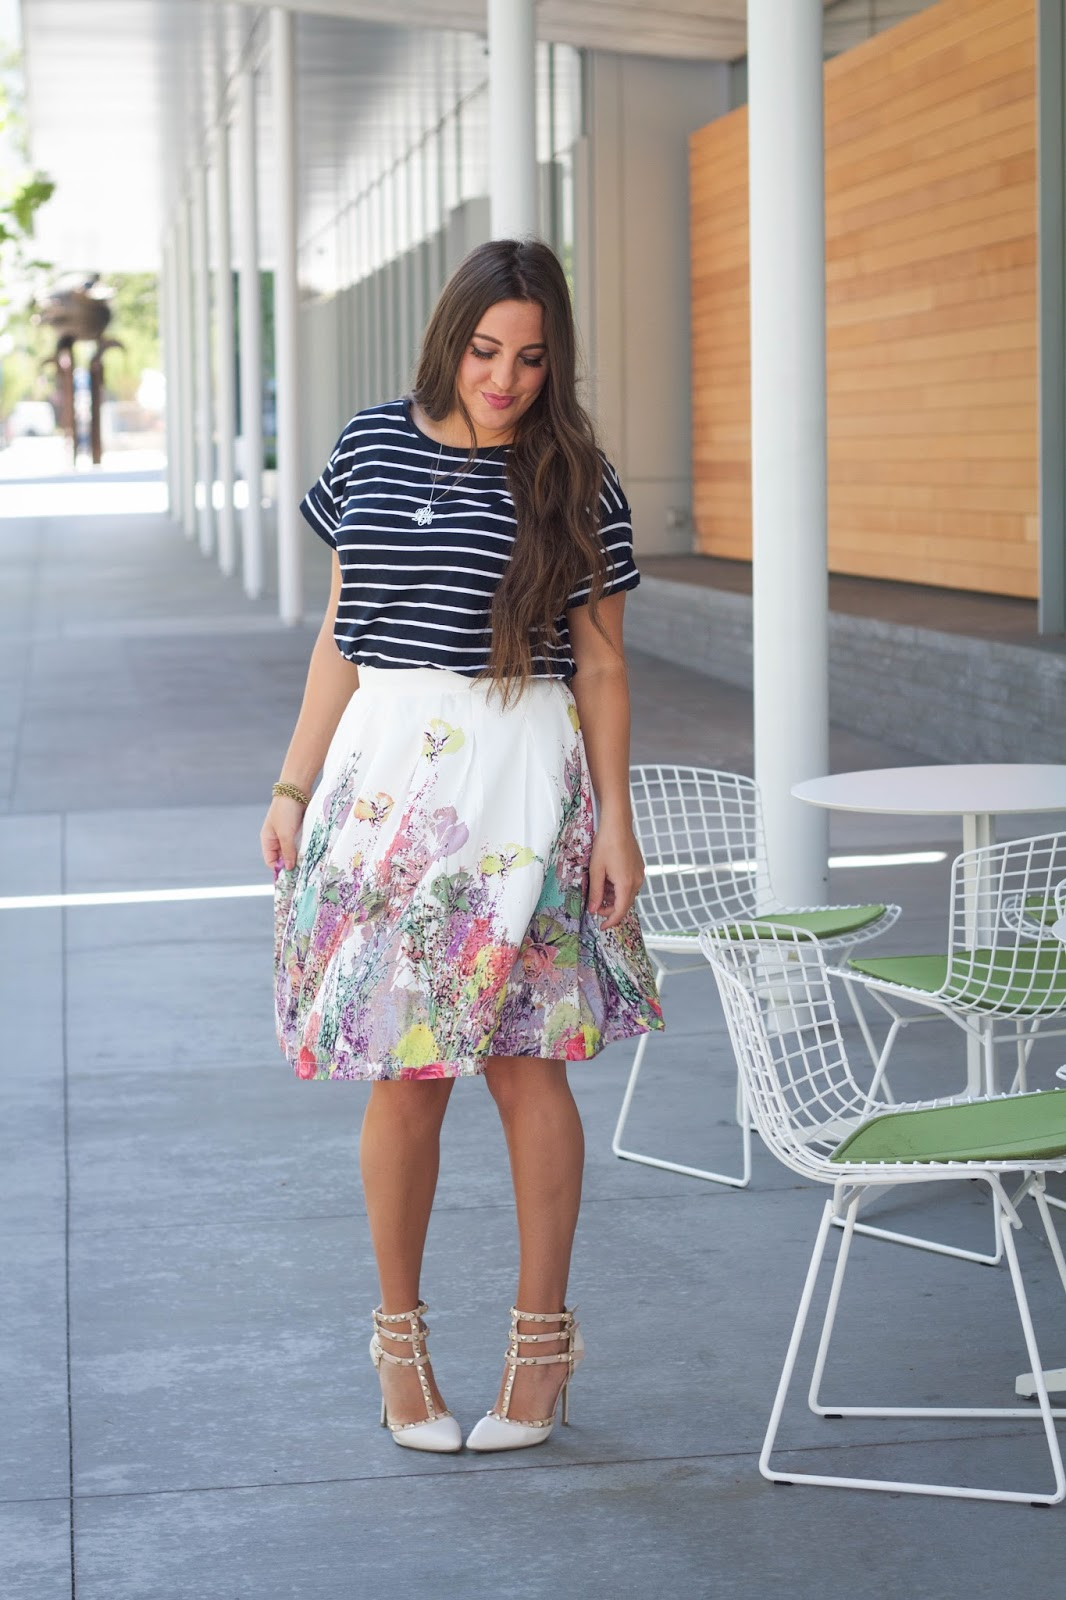 f719f680876e2b Top: H&M // Skirt: Bohme // Heels: Forever Young Shoes Photos by Brittany  Ting